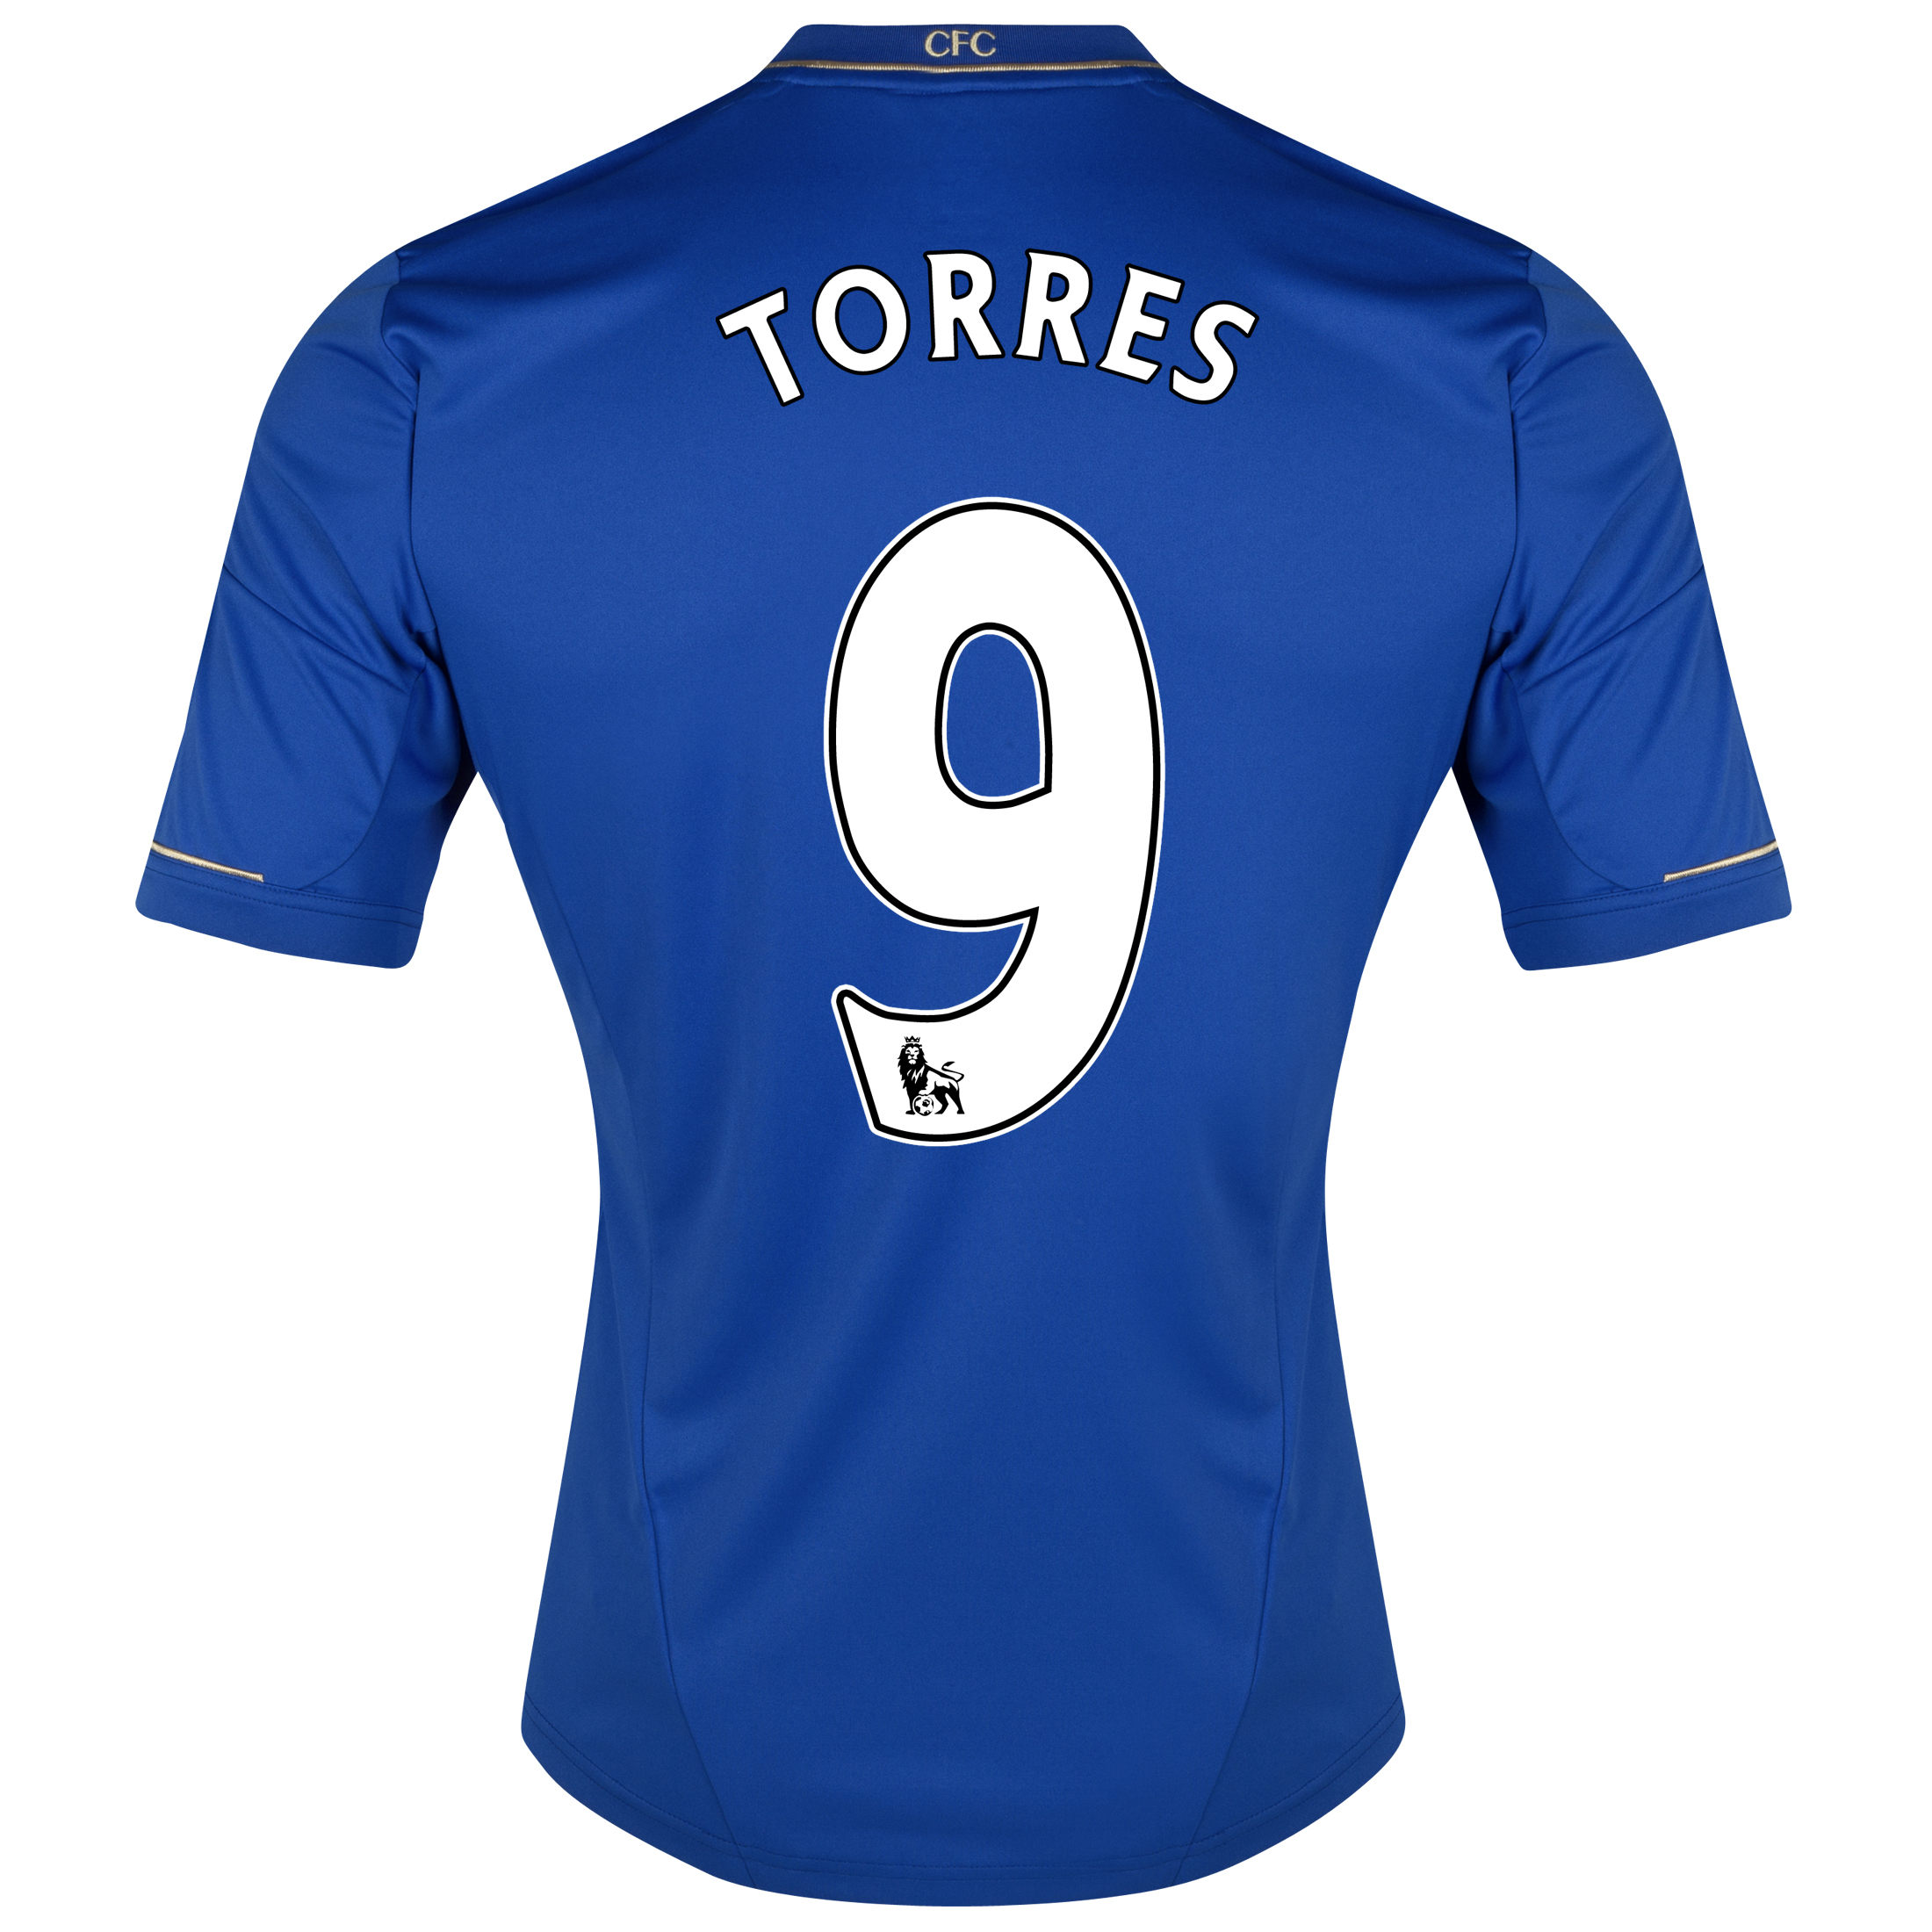 Chelsea Home Shirt 2012/13 - Youths with Torres 9 printing